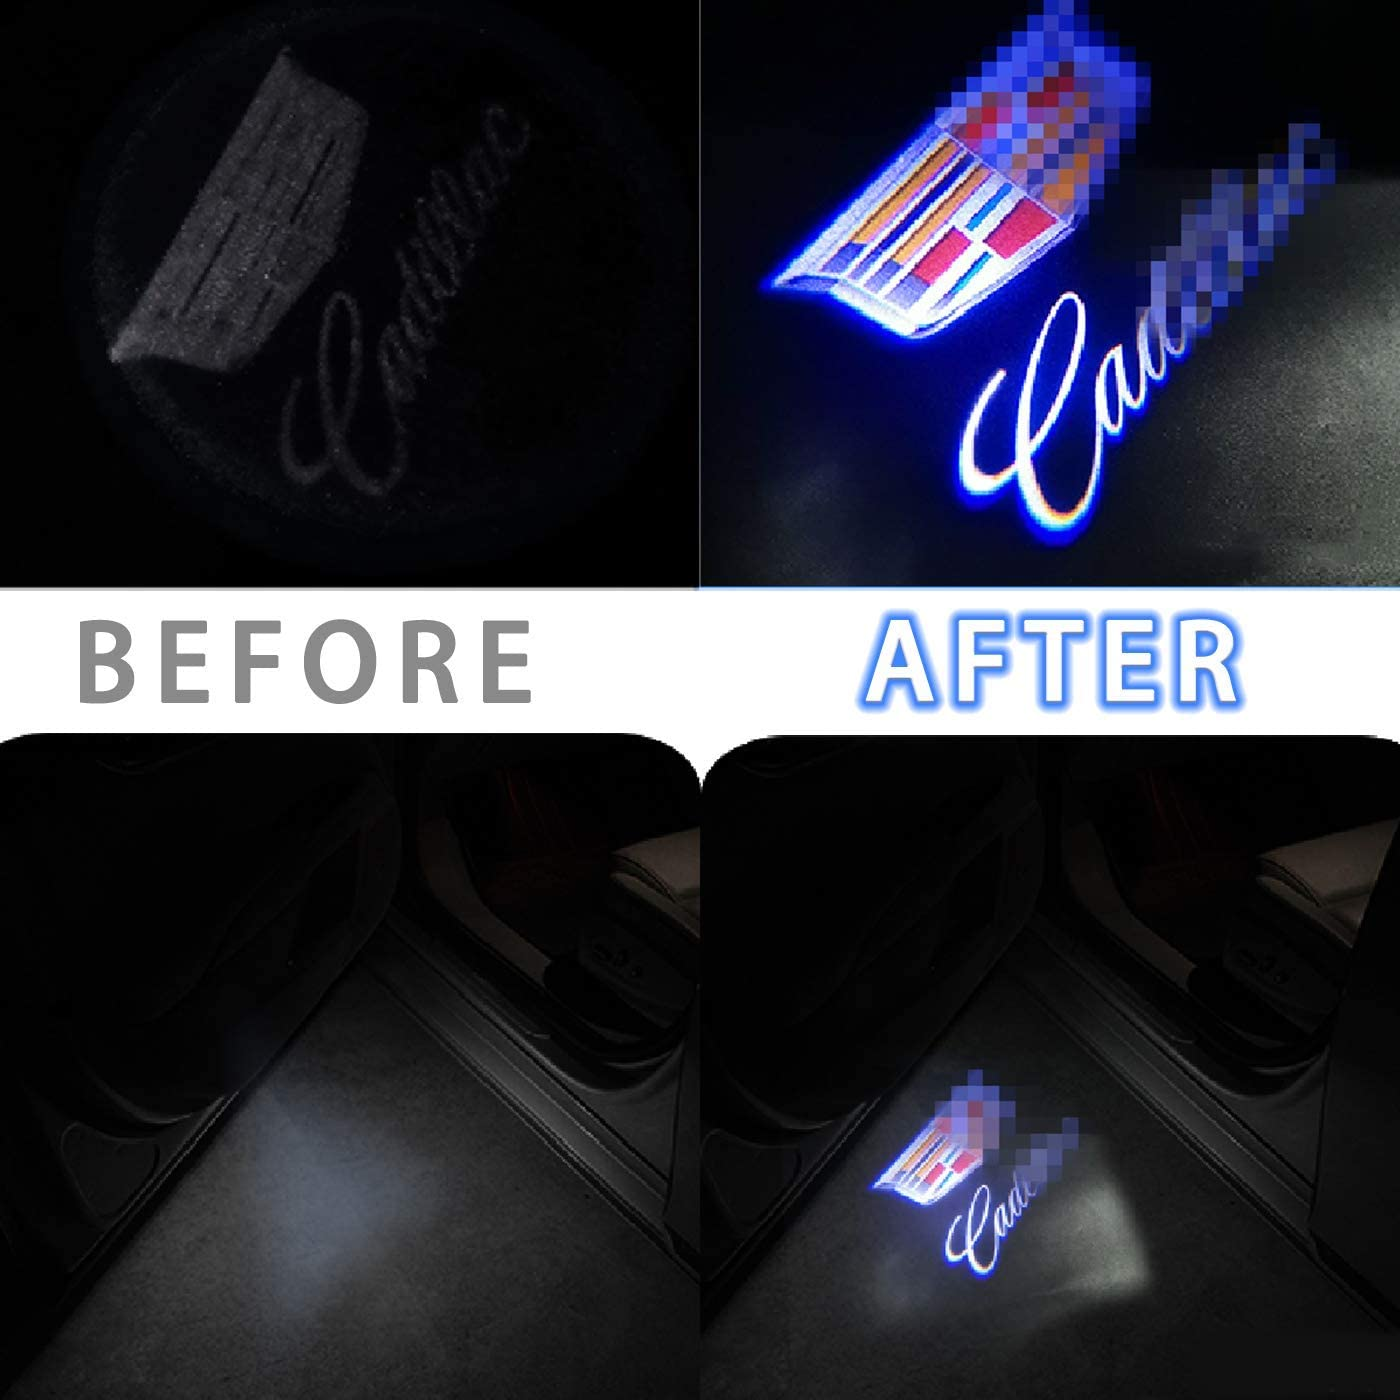 2 Pcs Car Door Lights Logo Projector for BUICK No Rewiring Easy to Install For All Universal Vehicles Car SUV 2 PCS Wireless Car Door Paste High- Welcome Light Projector No Drilling